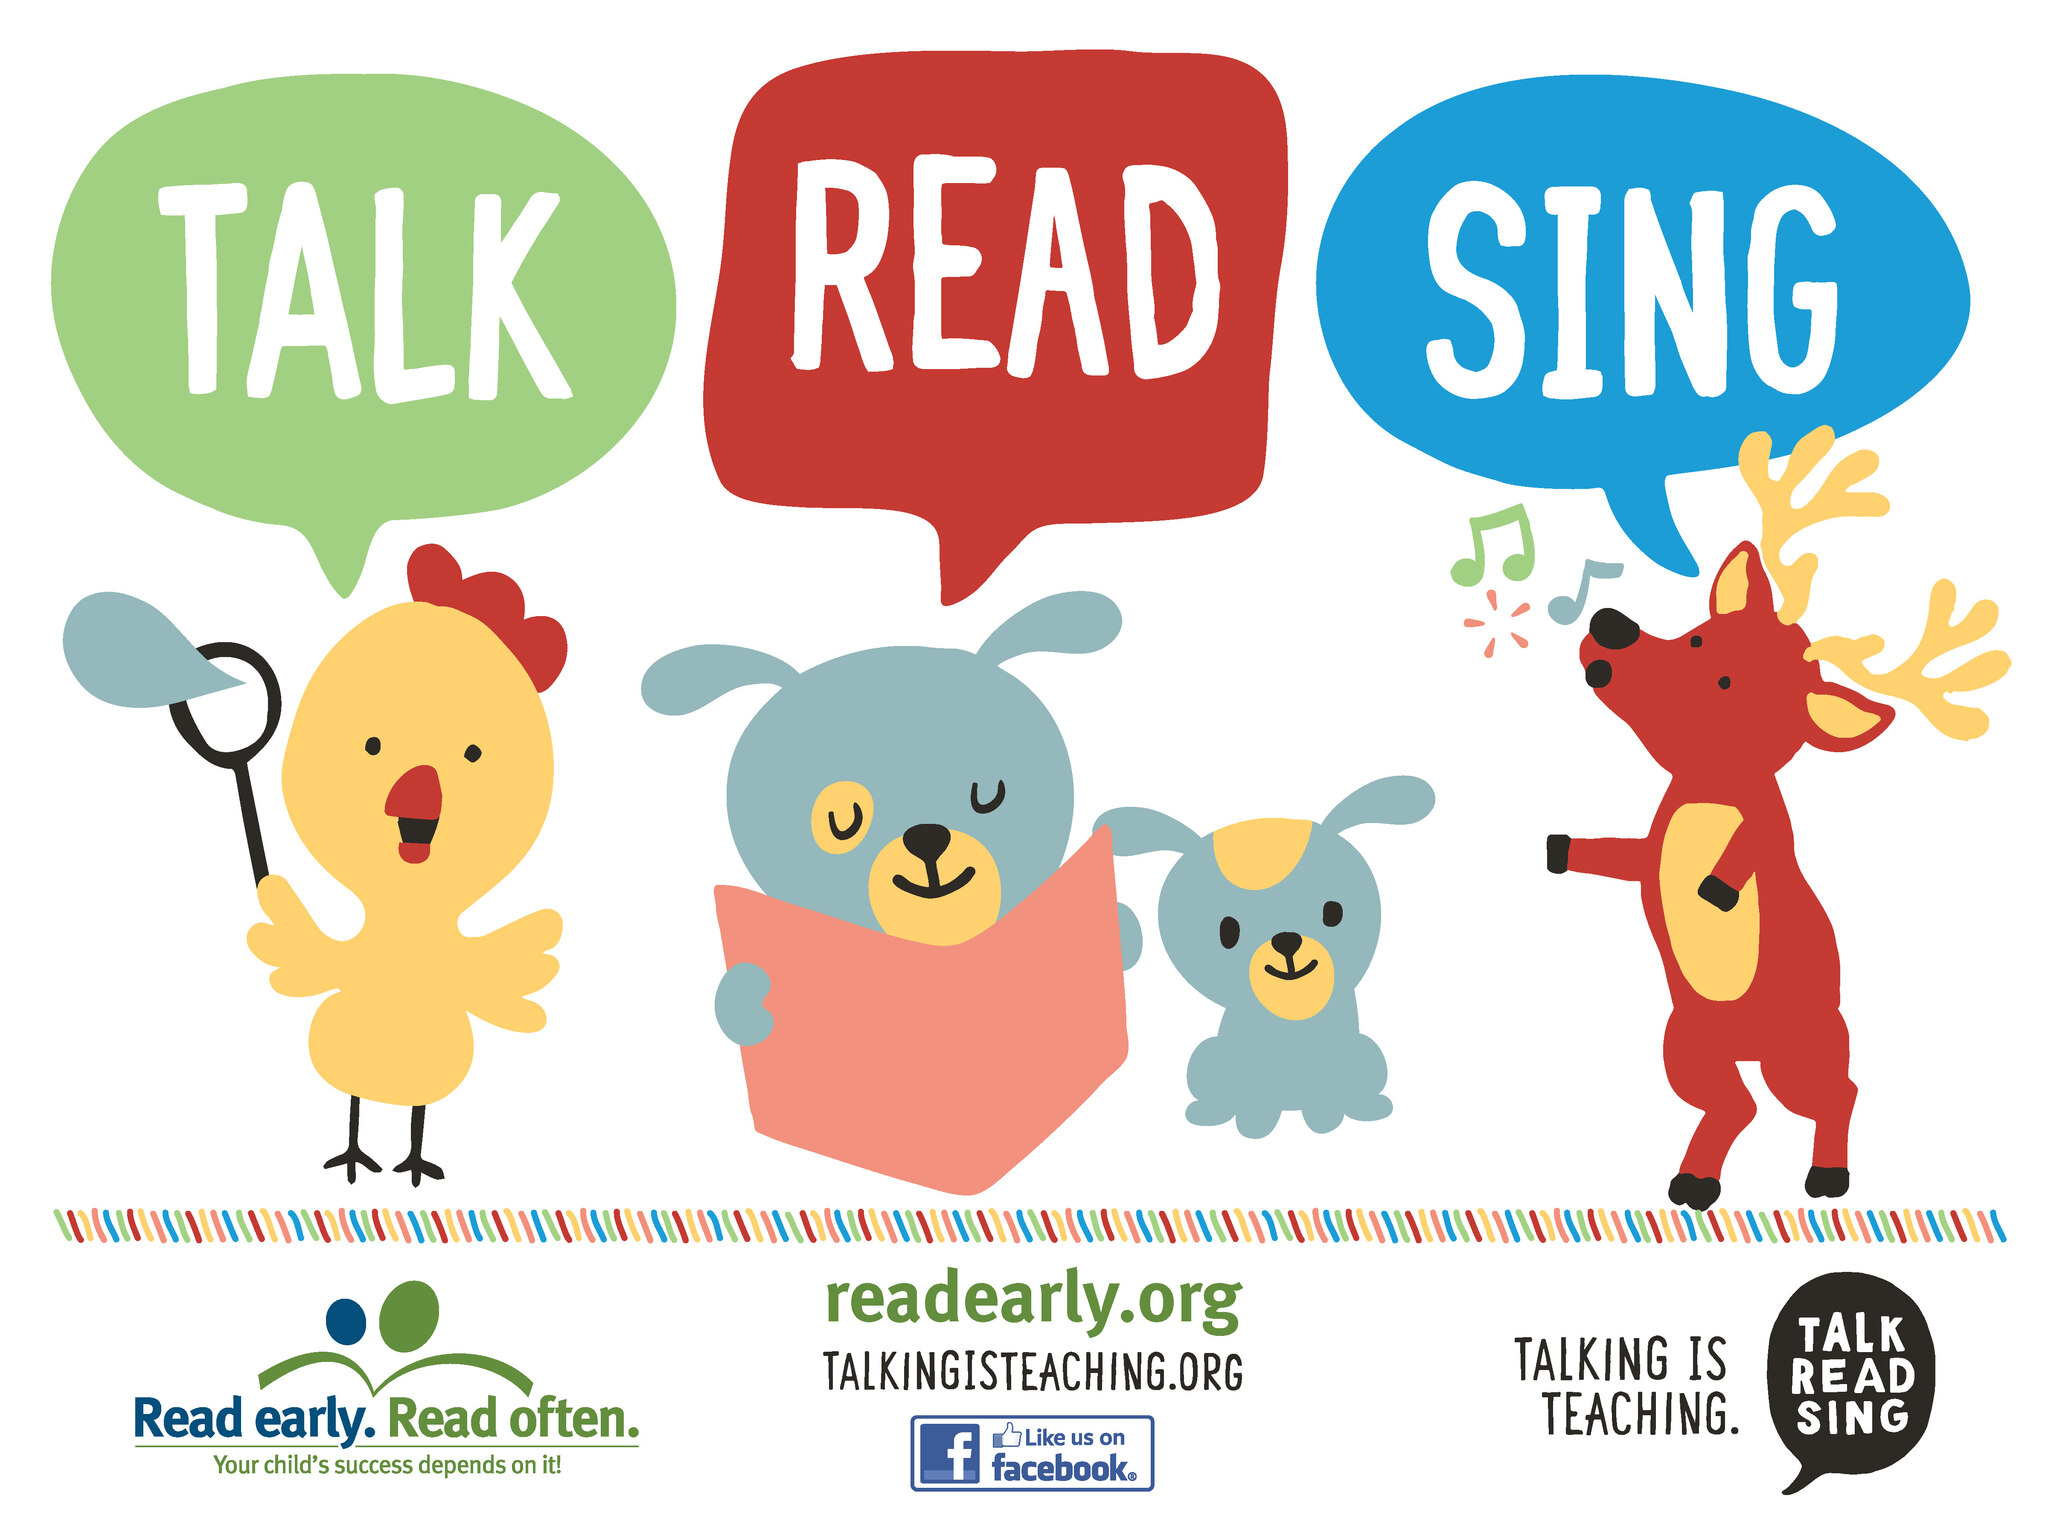 A Colorful duck, dog and moose with speech bubbles that say Talk, Read, Sing.  Read early. Read often. Logo.  Your child's success depends on it.  readearly.org talkingisteaching.org Find us on facebook logo.  Talking is Teaching Logo with  Talk, Read, Sing in speech bu